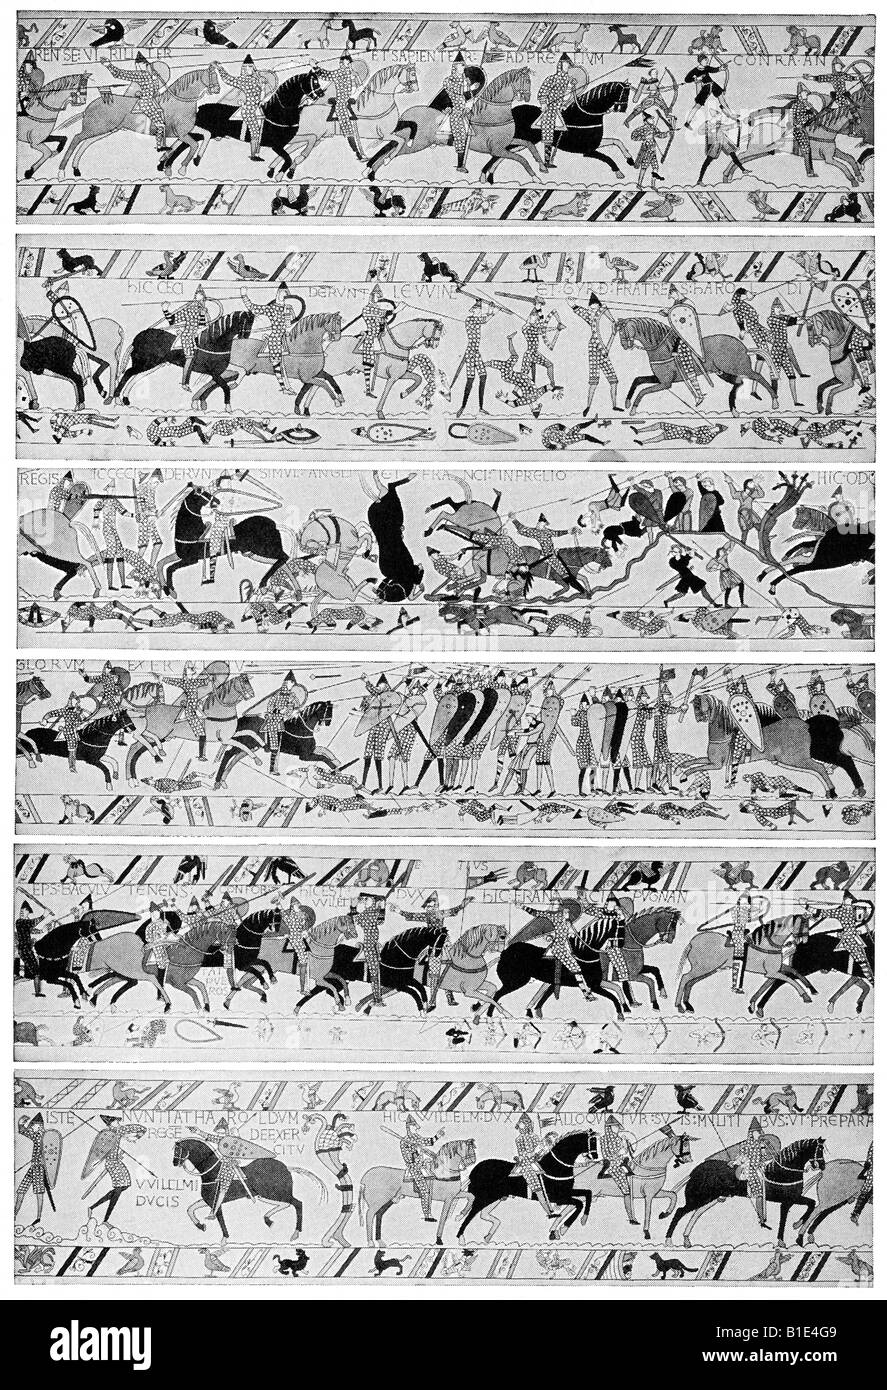 Bayeux tapestry - Stock Image